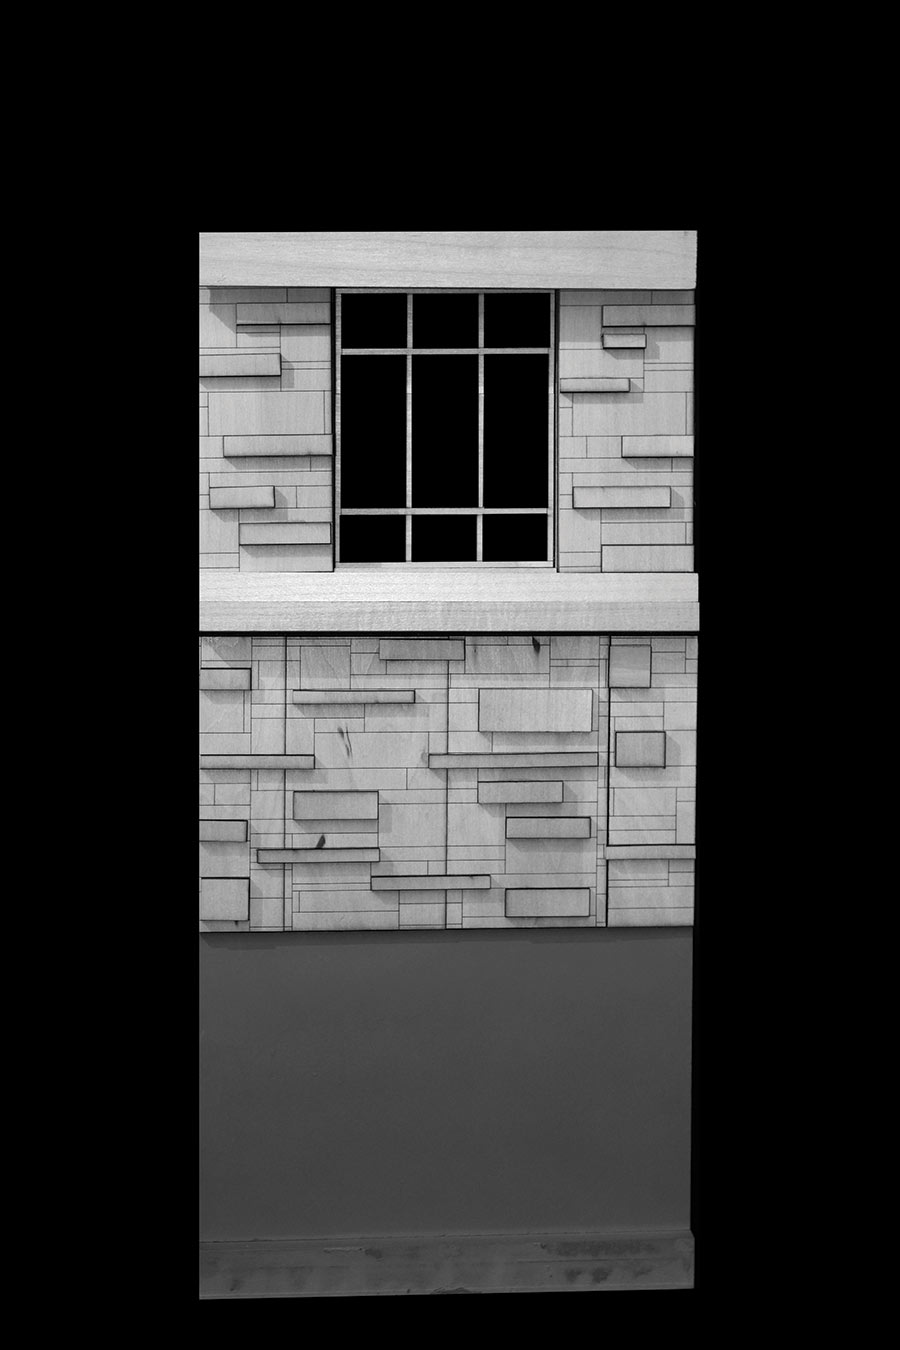 black and white image of house facade